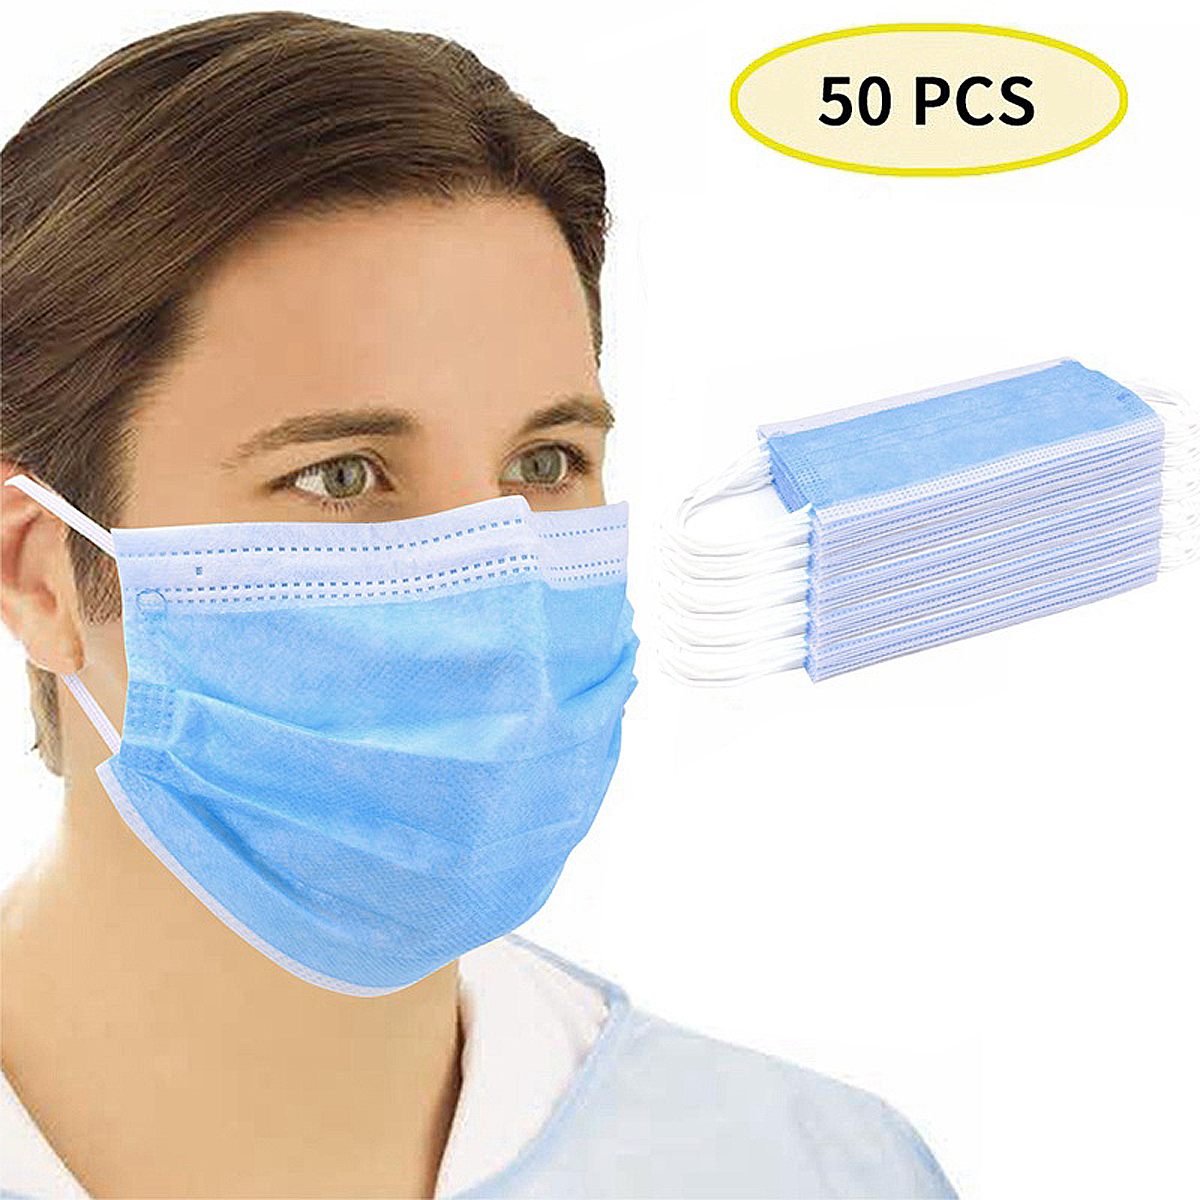 Manufacturer Supplies 3 Layers Of Ordinary Respirators Are Safe And Breathable 50 Disposable Masks For Civilian Use In Stock